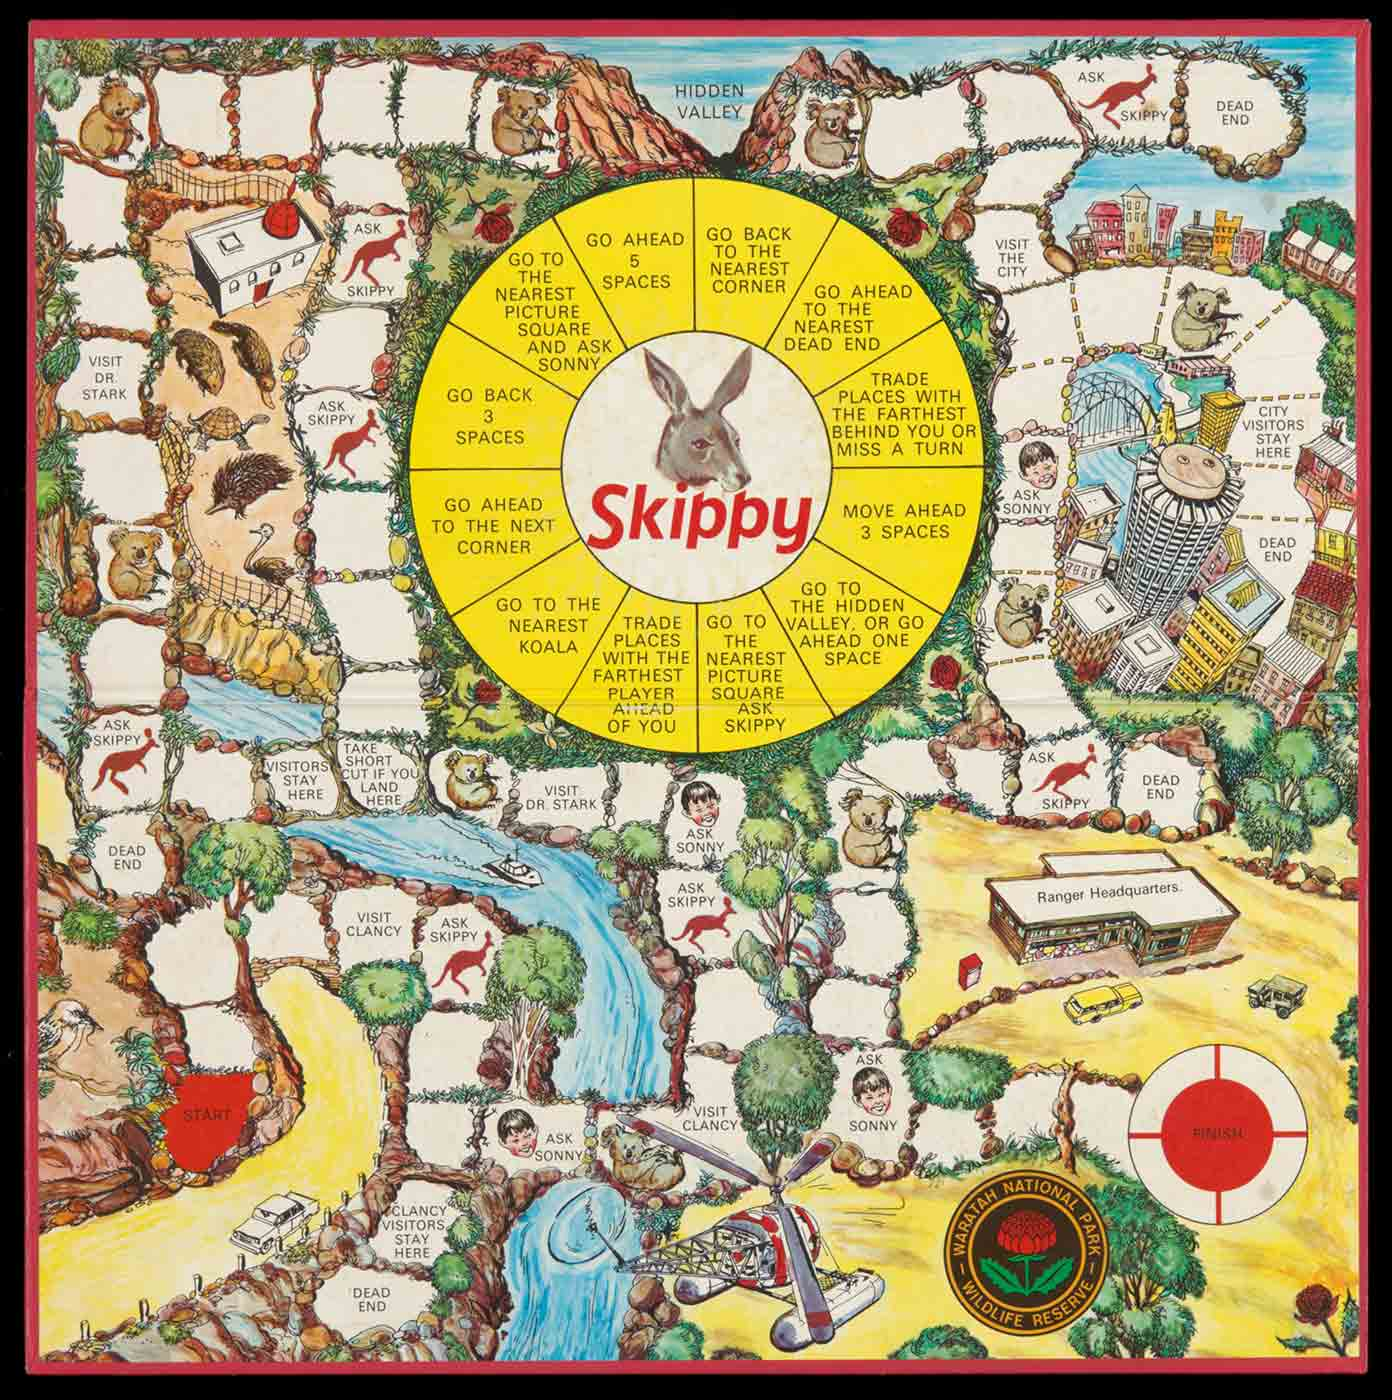 'Skippy' board game with a central image of a kangaroo and game squares set in locations including Hidden Valley and Sydney. - click to view larger image